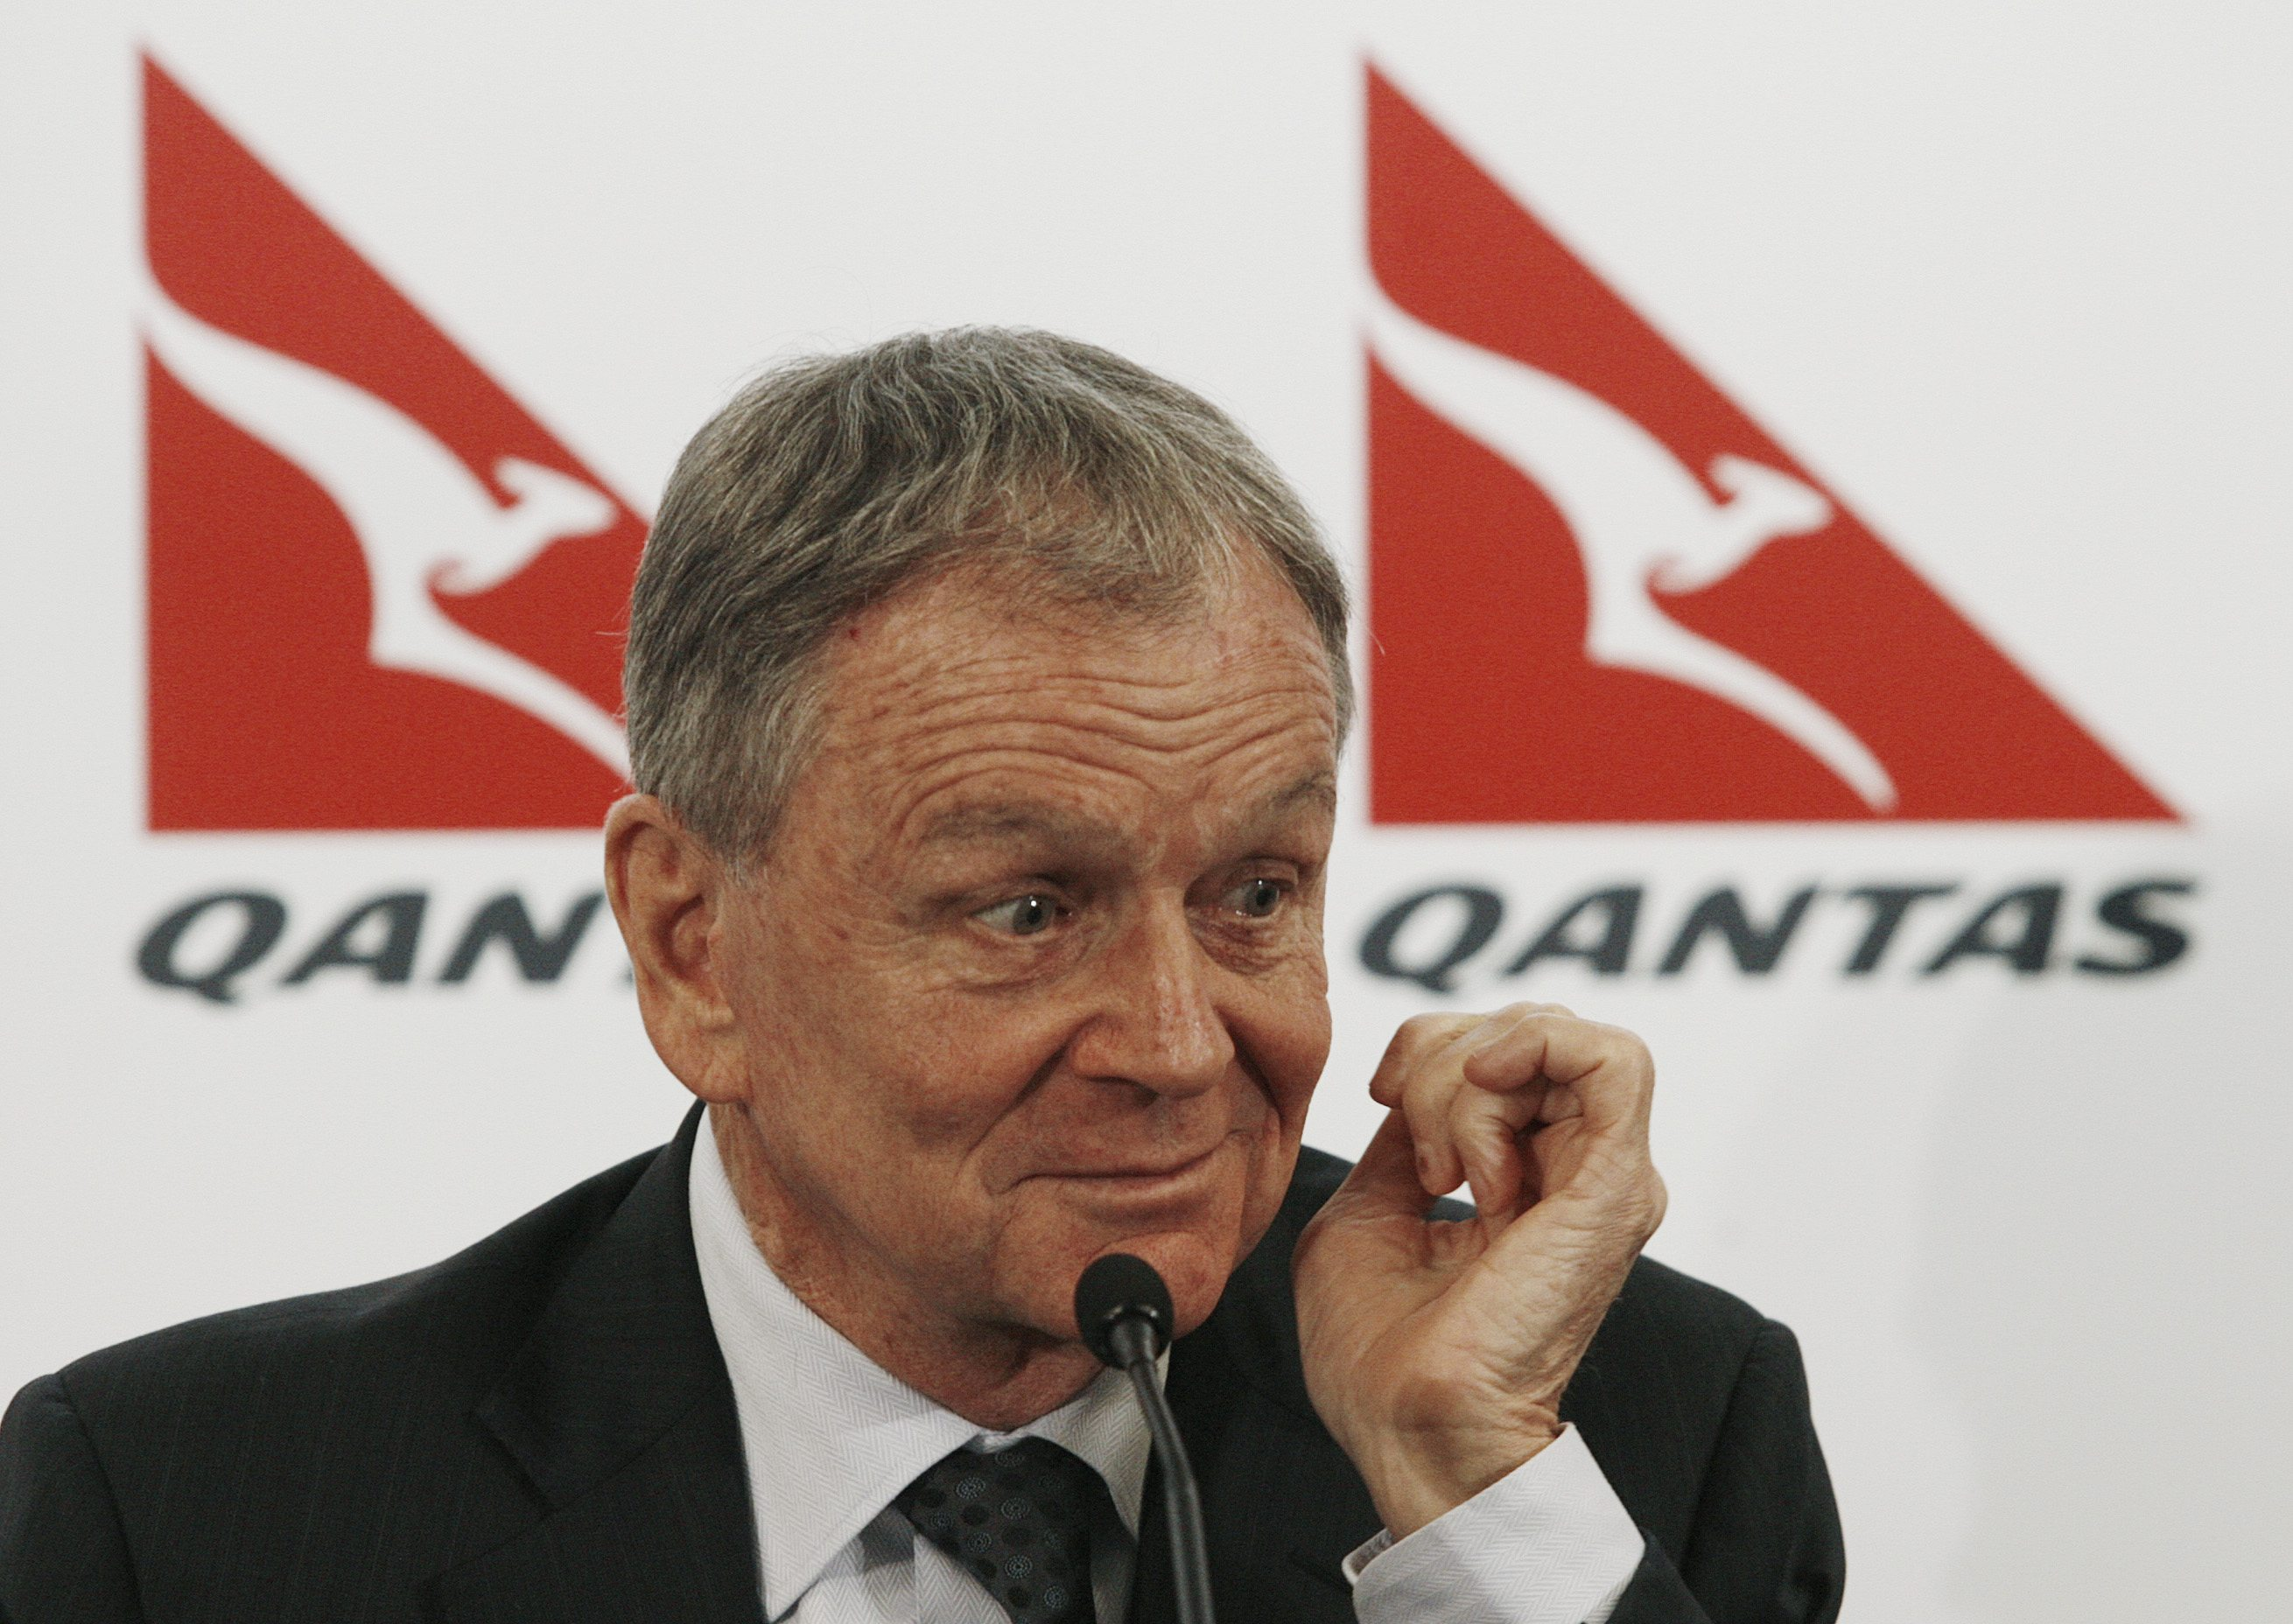 Retiring Qantas Chief Executive Officer Geoff Dixon gestures during a news conference in central Sydney, Australia yesterday.